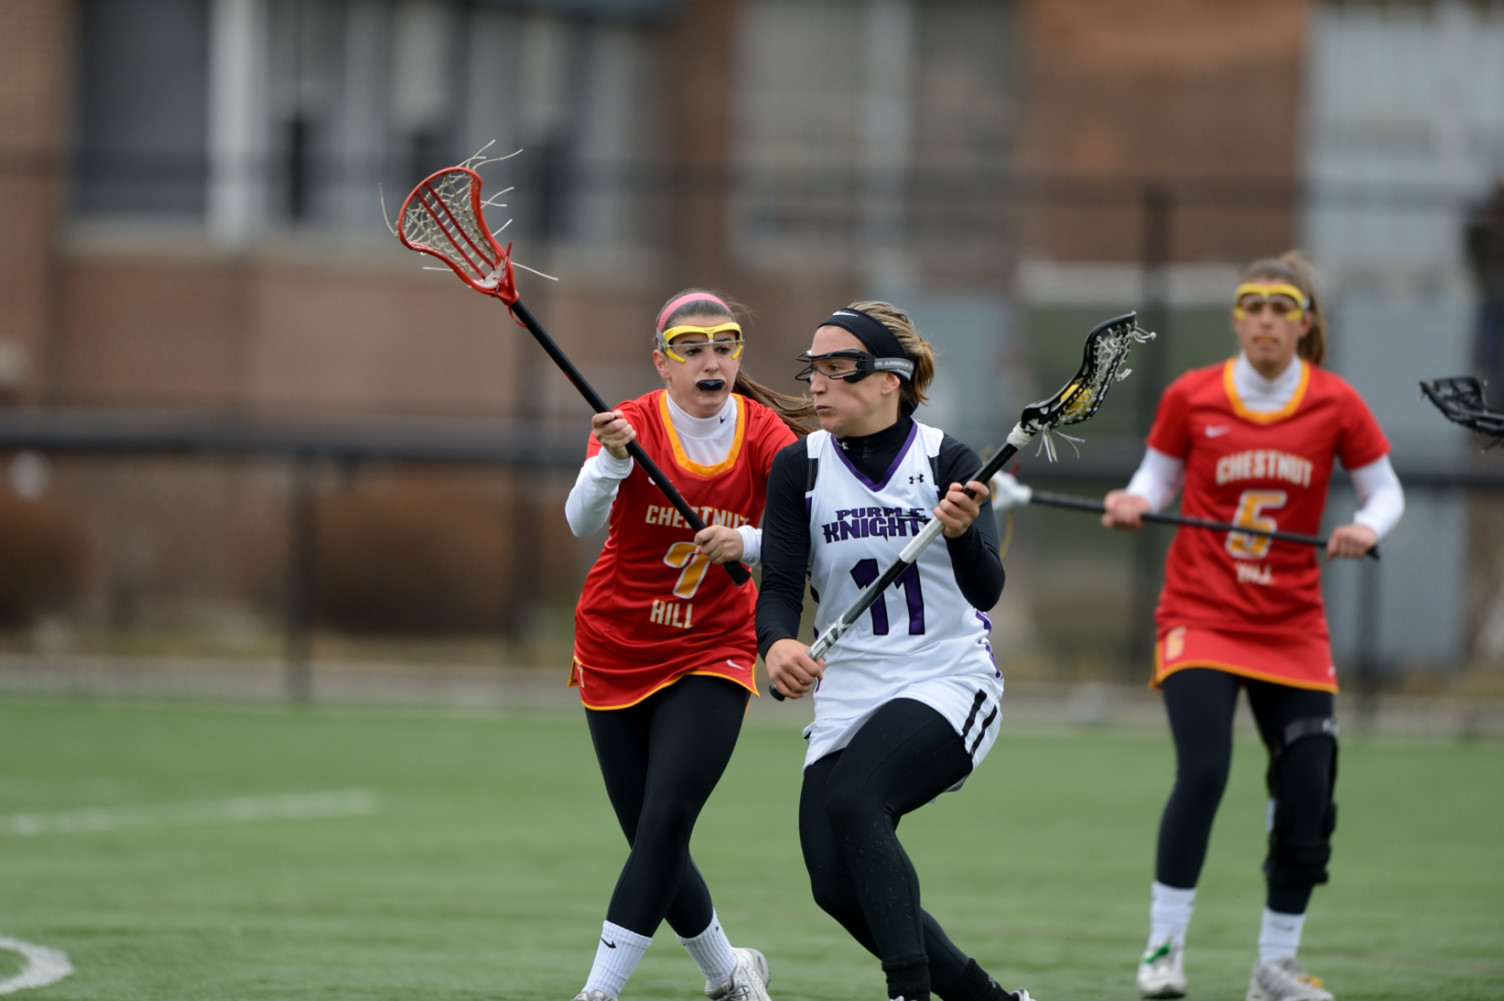 Women's Lacrosse Drops High-Scoring Affair To Nyack, 19-16